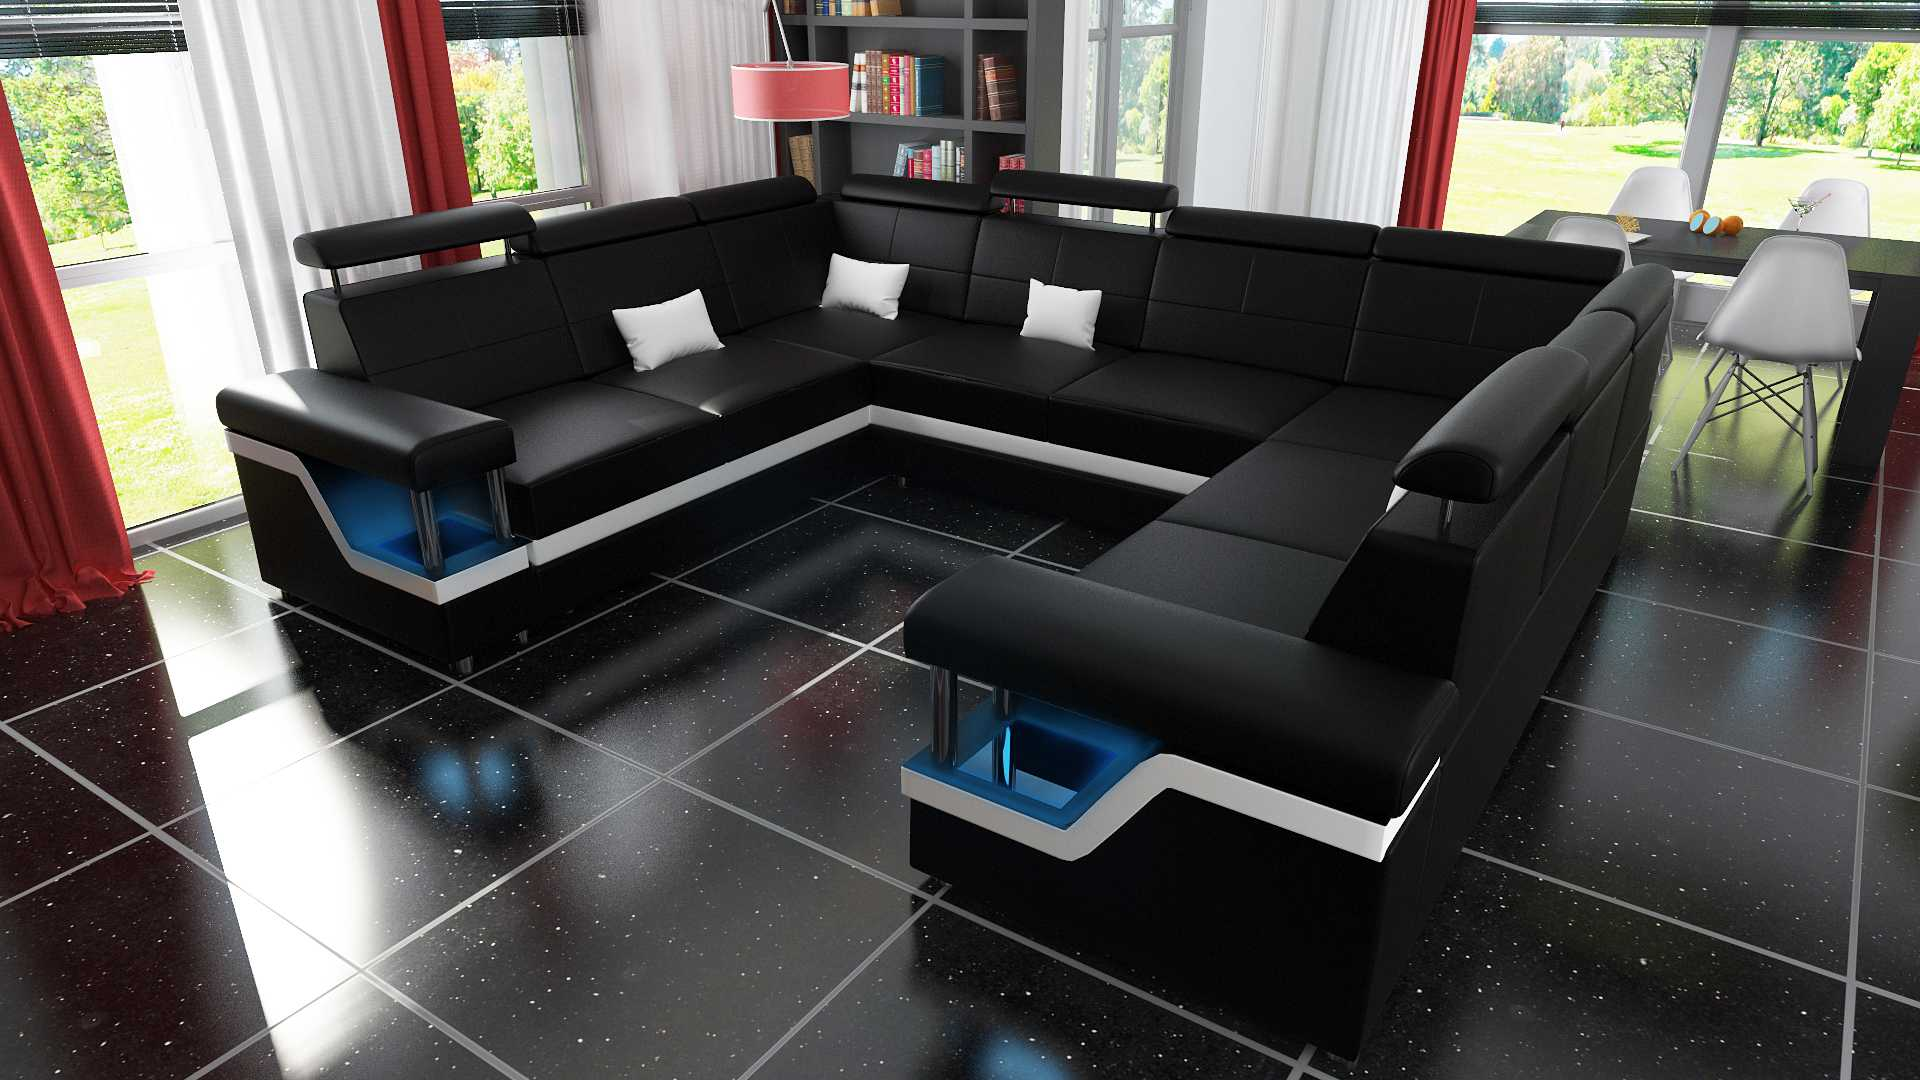 sofas und ledersofas hamburg 4 bettfunktion designersofa. Black Bedroom Furniture Sets. Home Design Ideas